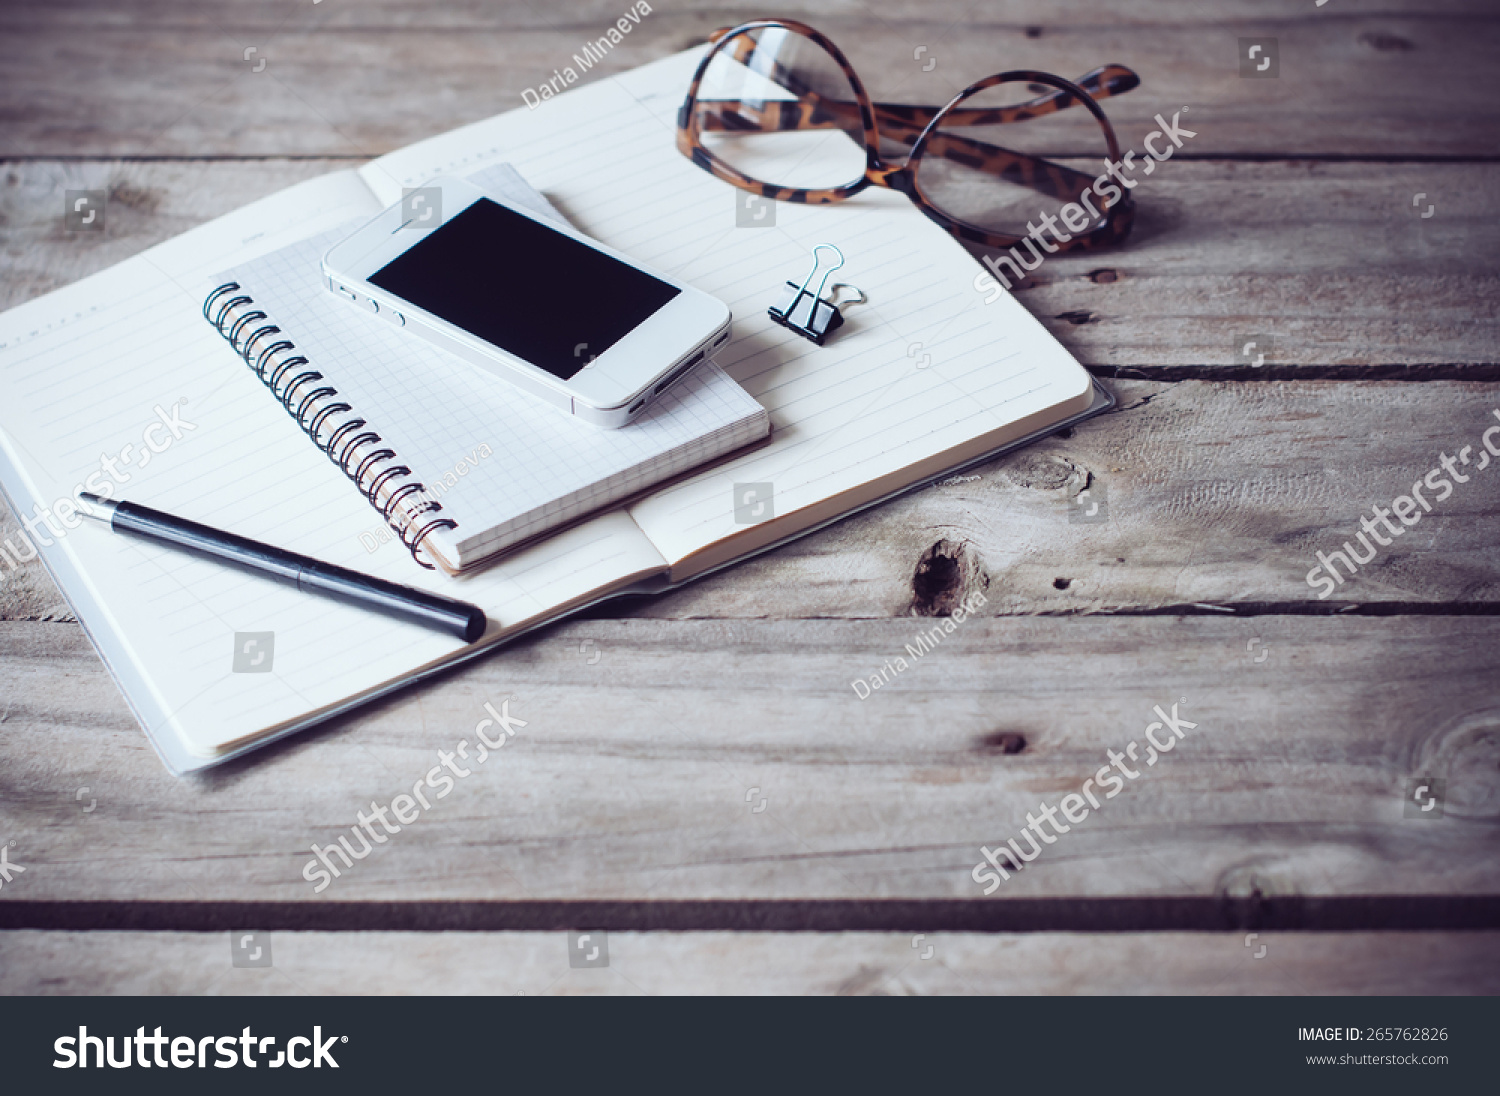 Hipster Home Office Tabletop: Papers And Notebooks, Reading Glasses, Smart  Phone, Pen